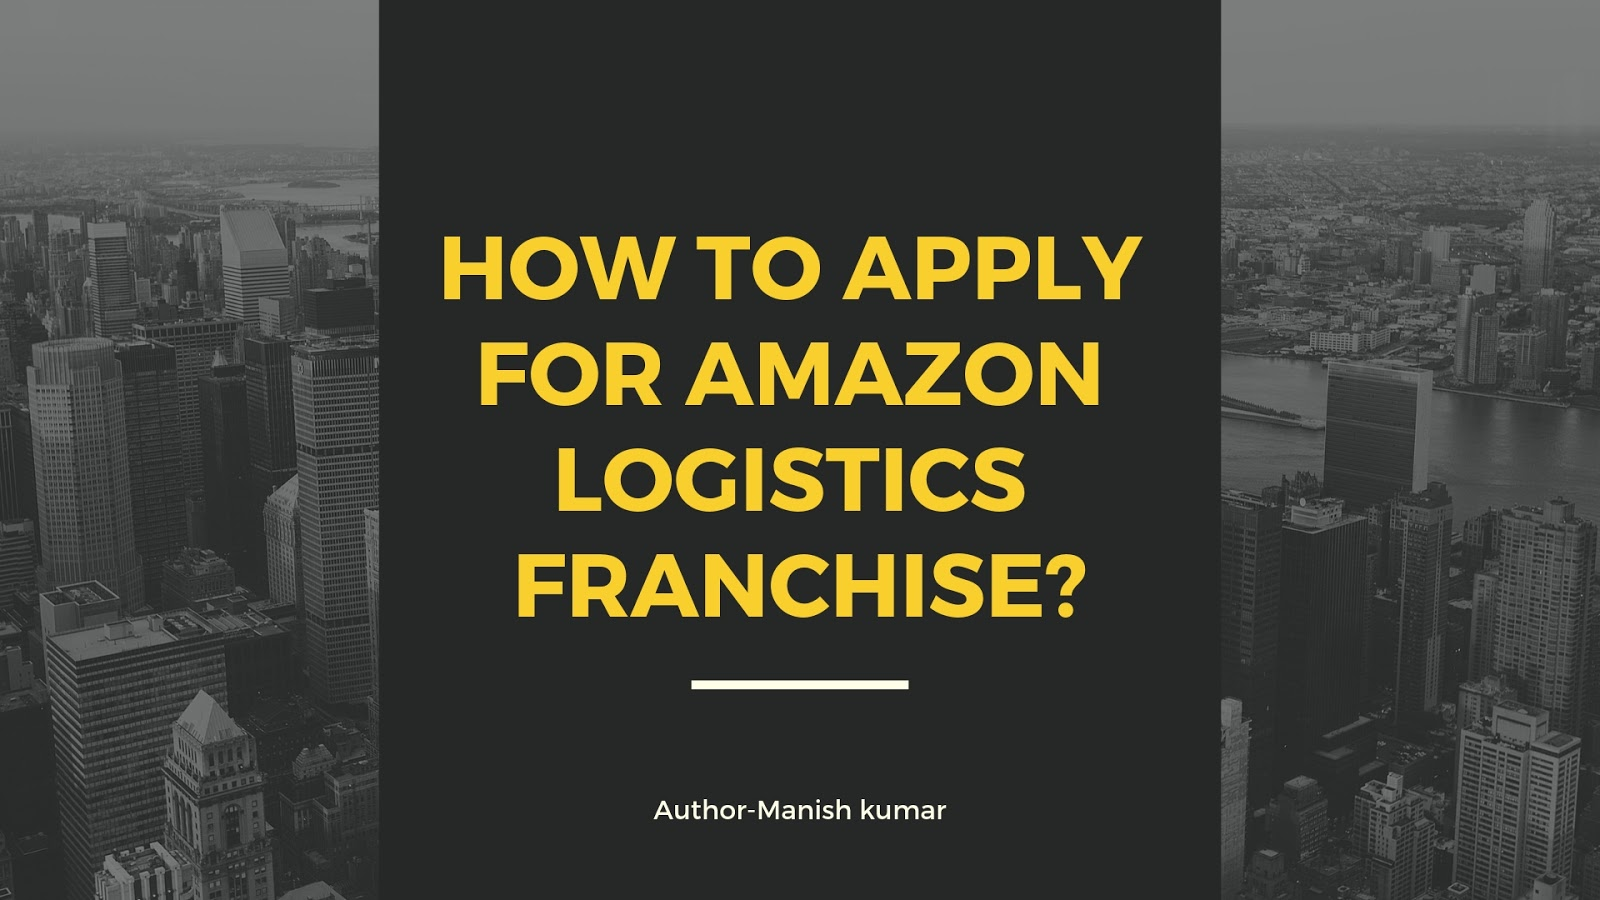 Apply For Amazon Logistics Franchise